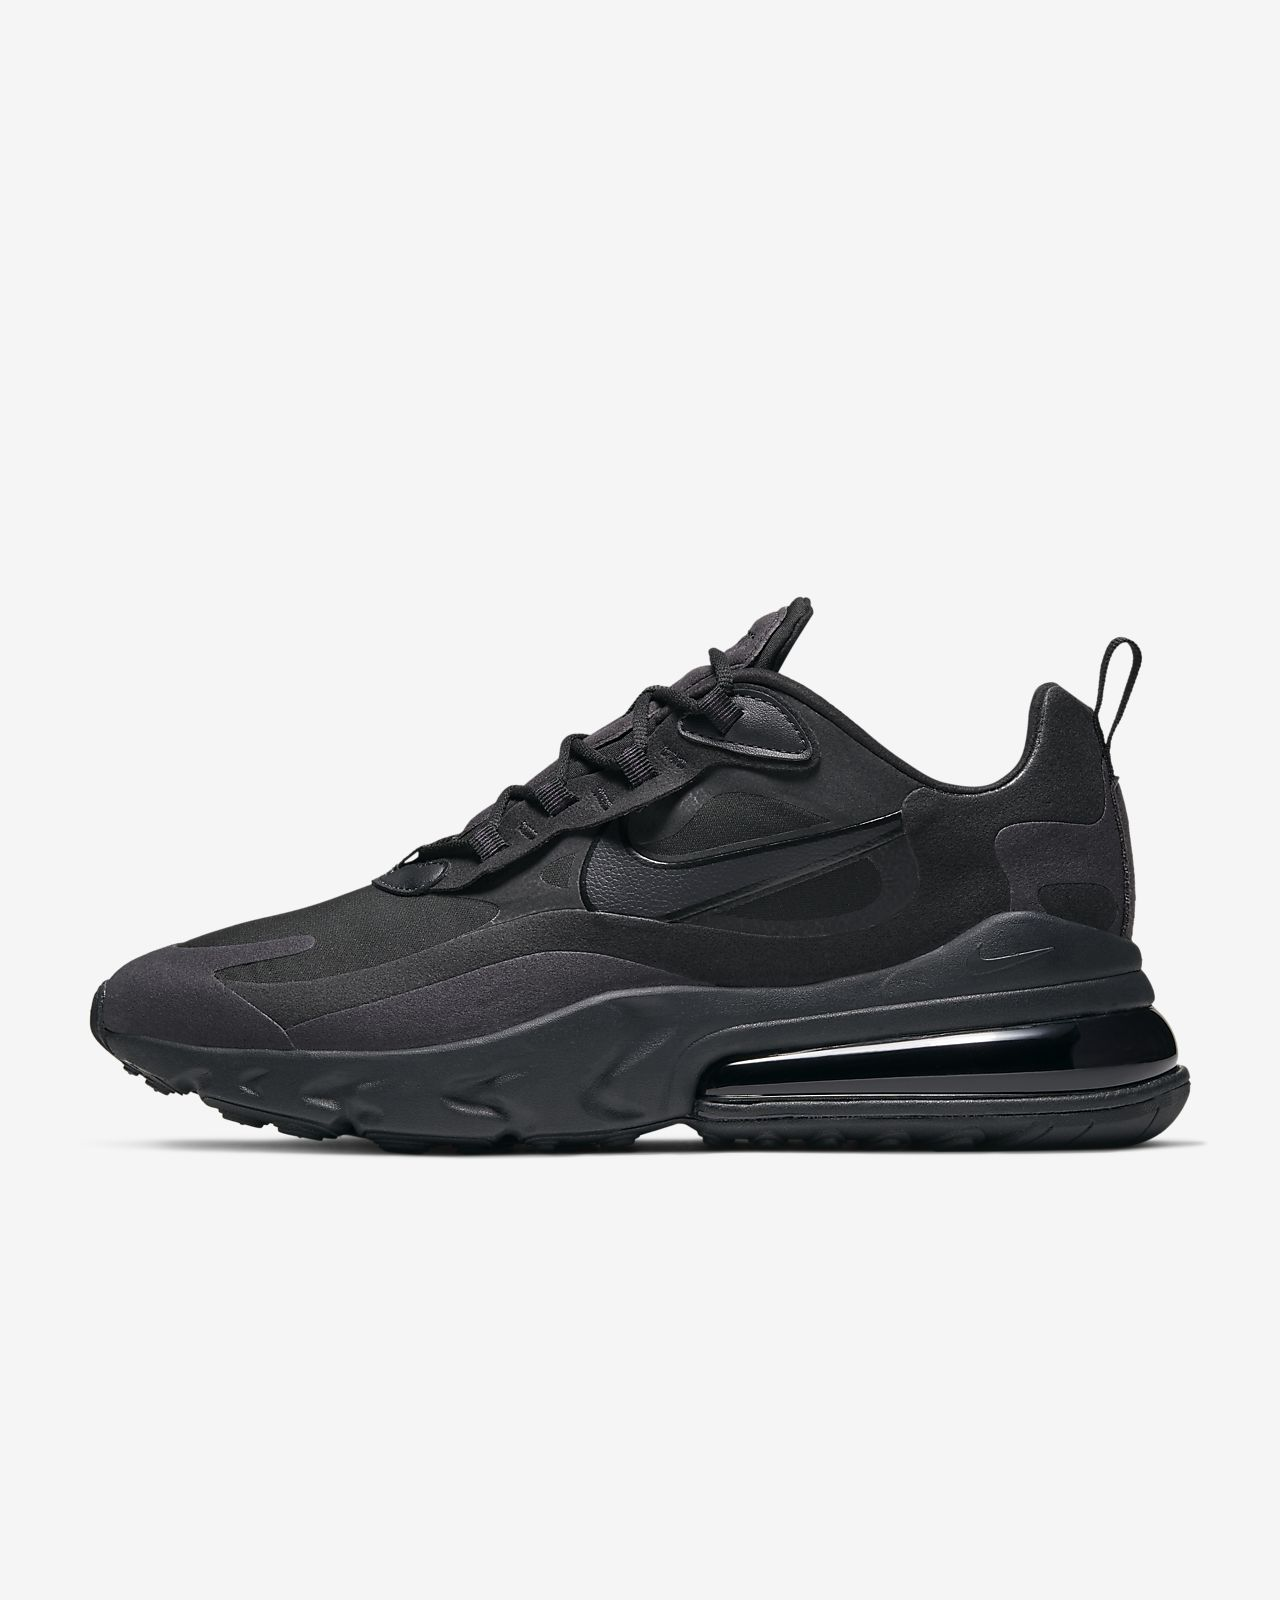 air max 270 react uomo nere